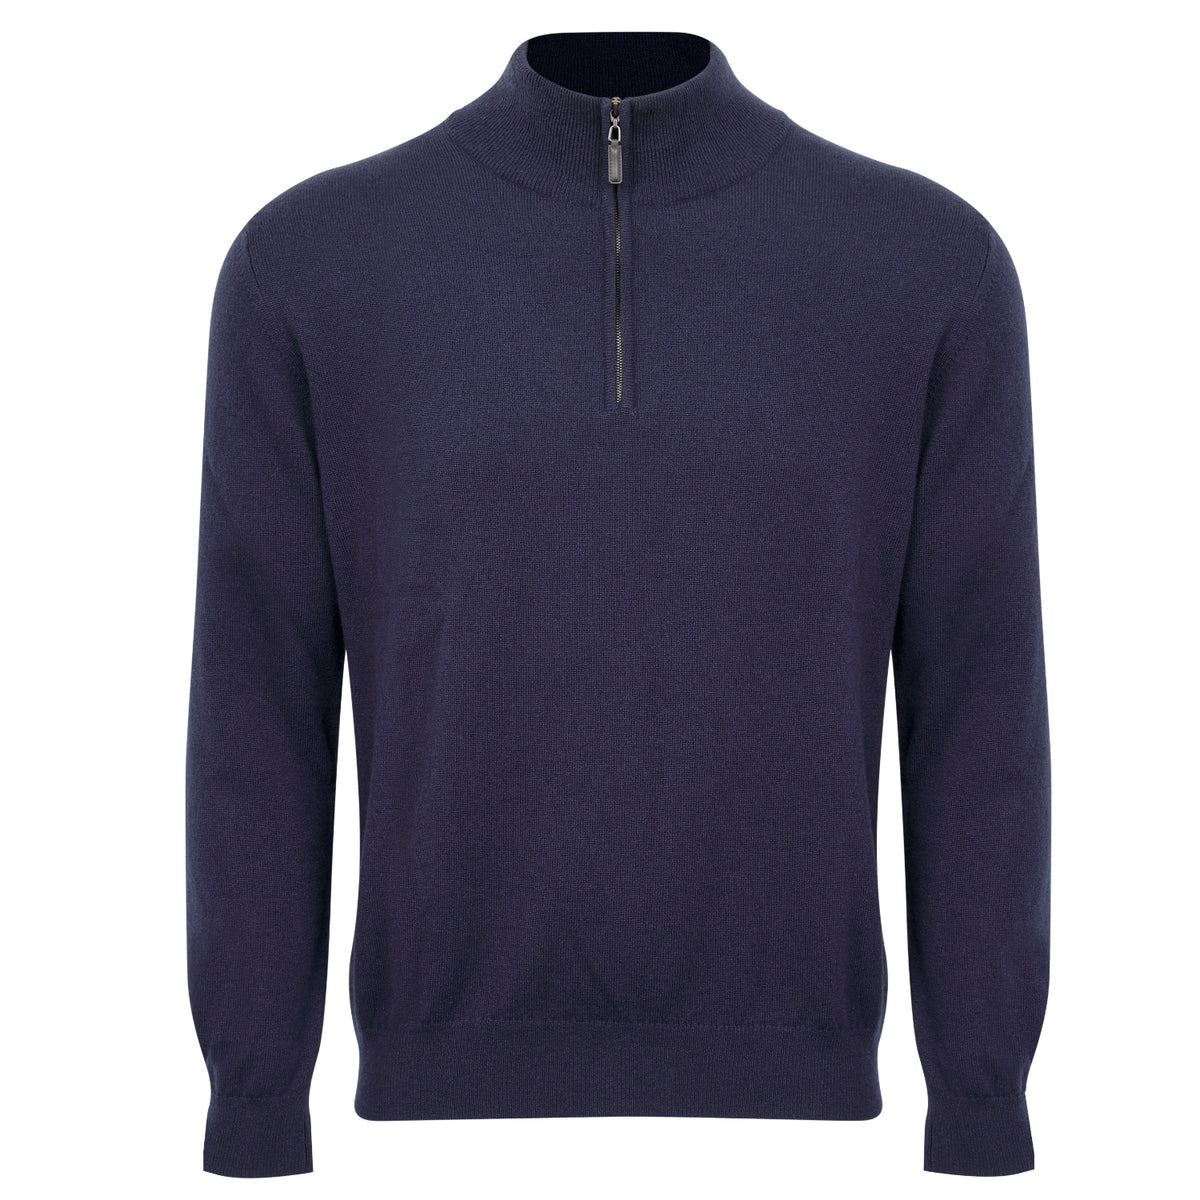 Johnstons of Elgin | Mens 2-Ply Cashmere Zip Turtle Neck | Navy Blue | Shop now at The Cashmere Choice | London